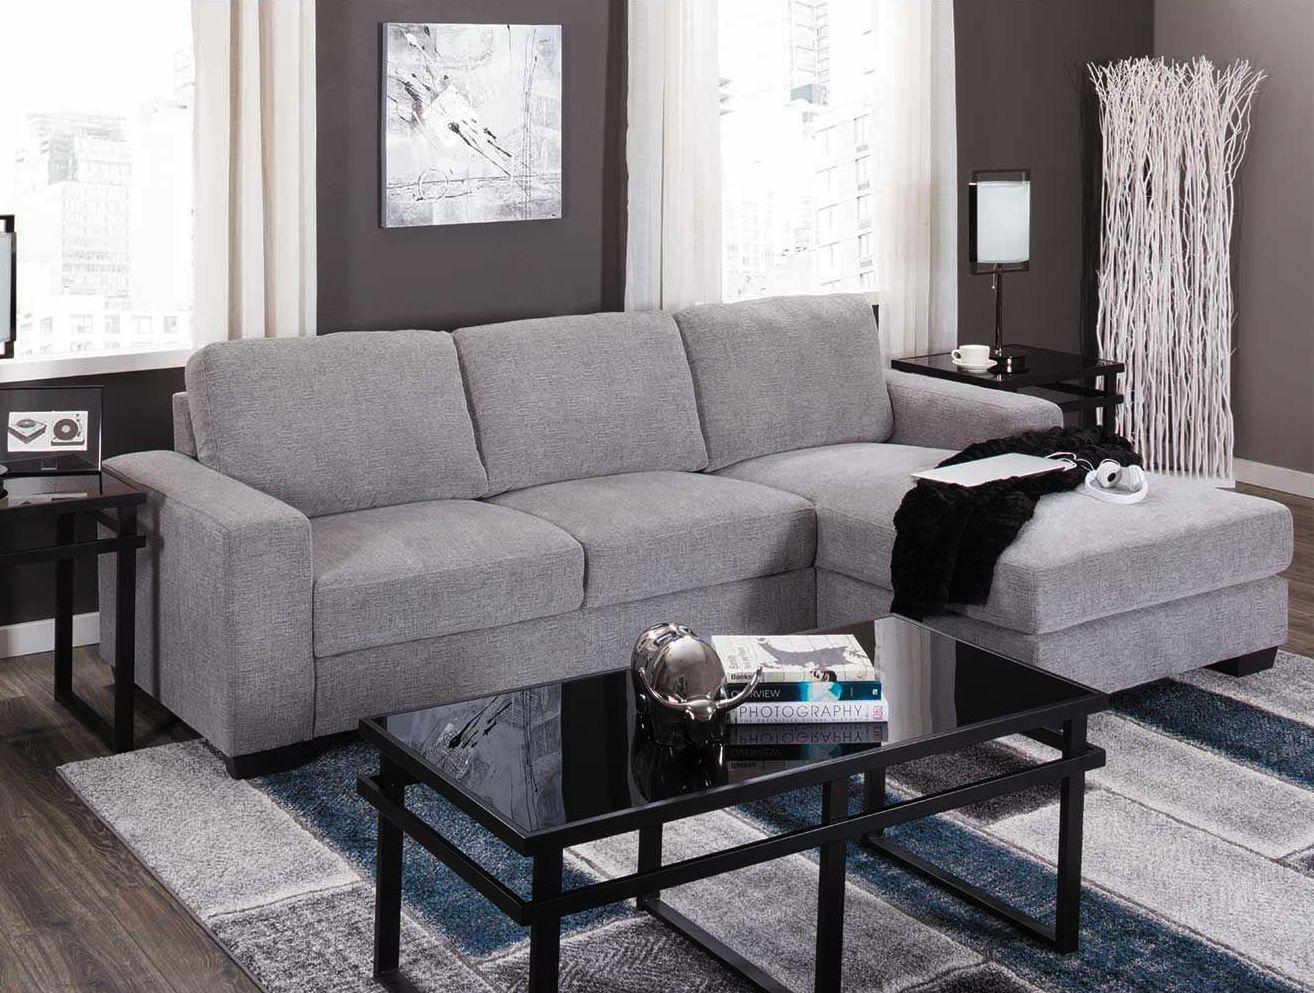 Sofa Chaise FACTORY SPECIAL at out Lancaster PA showroom see our